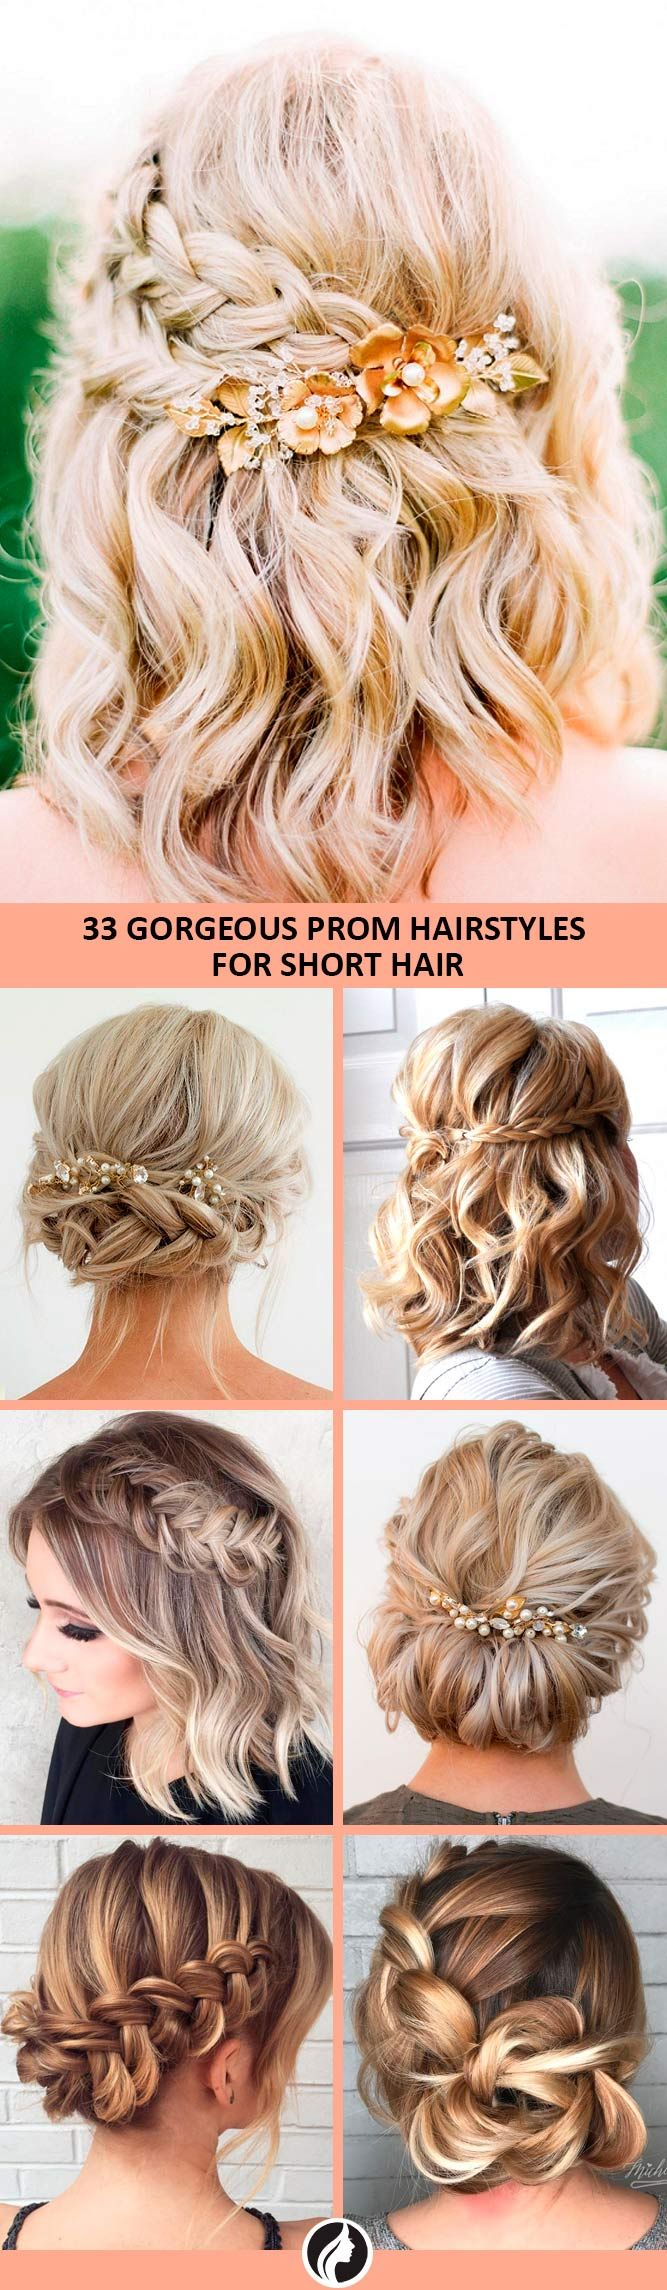 33 amazing prom hairstyles for short hair 2019 | hair | prom